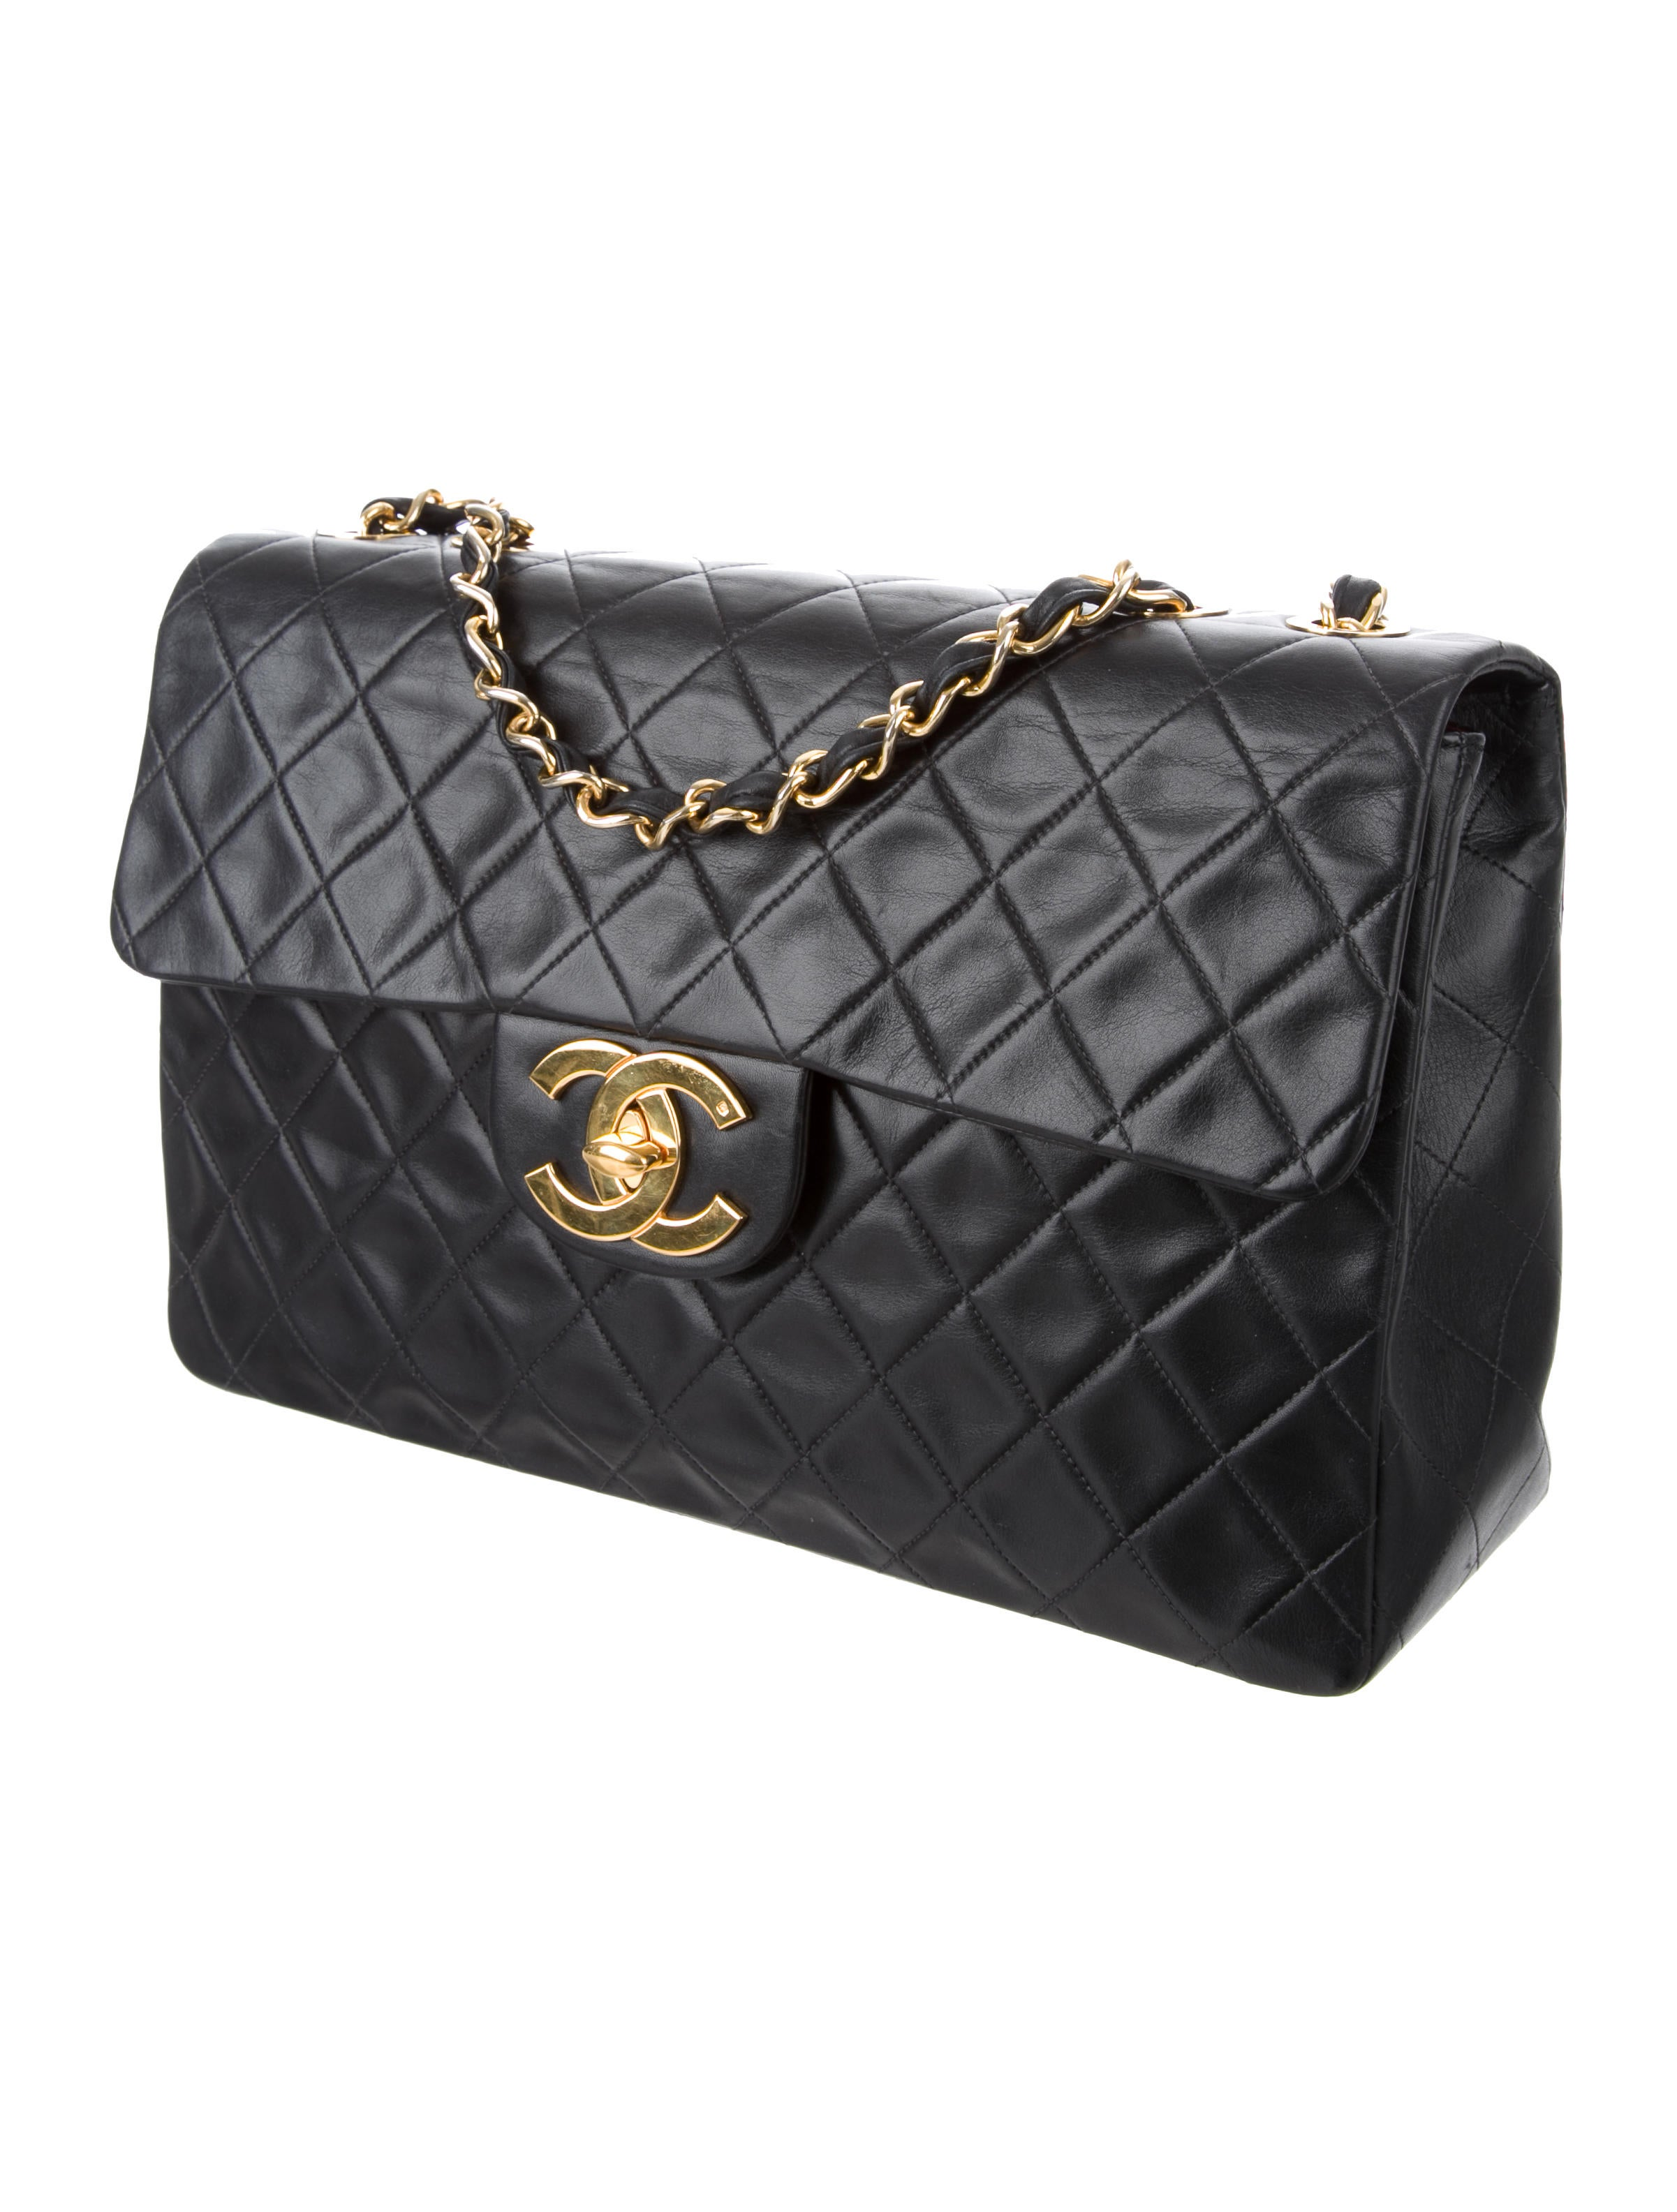 7a85a313e37f Chanel Maxi Bags Not On Chanel Website. Chanel Classic Maxi Single Flap Bag  ...